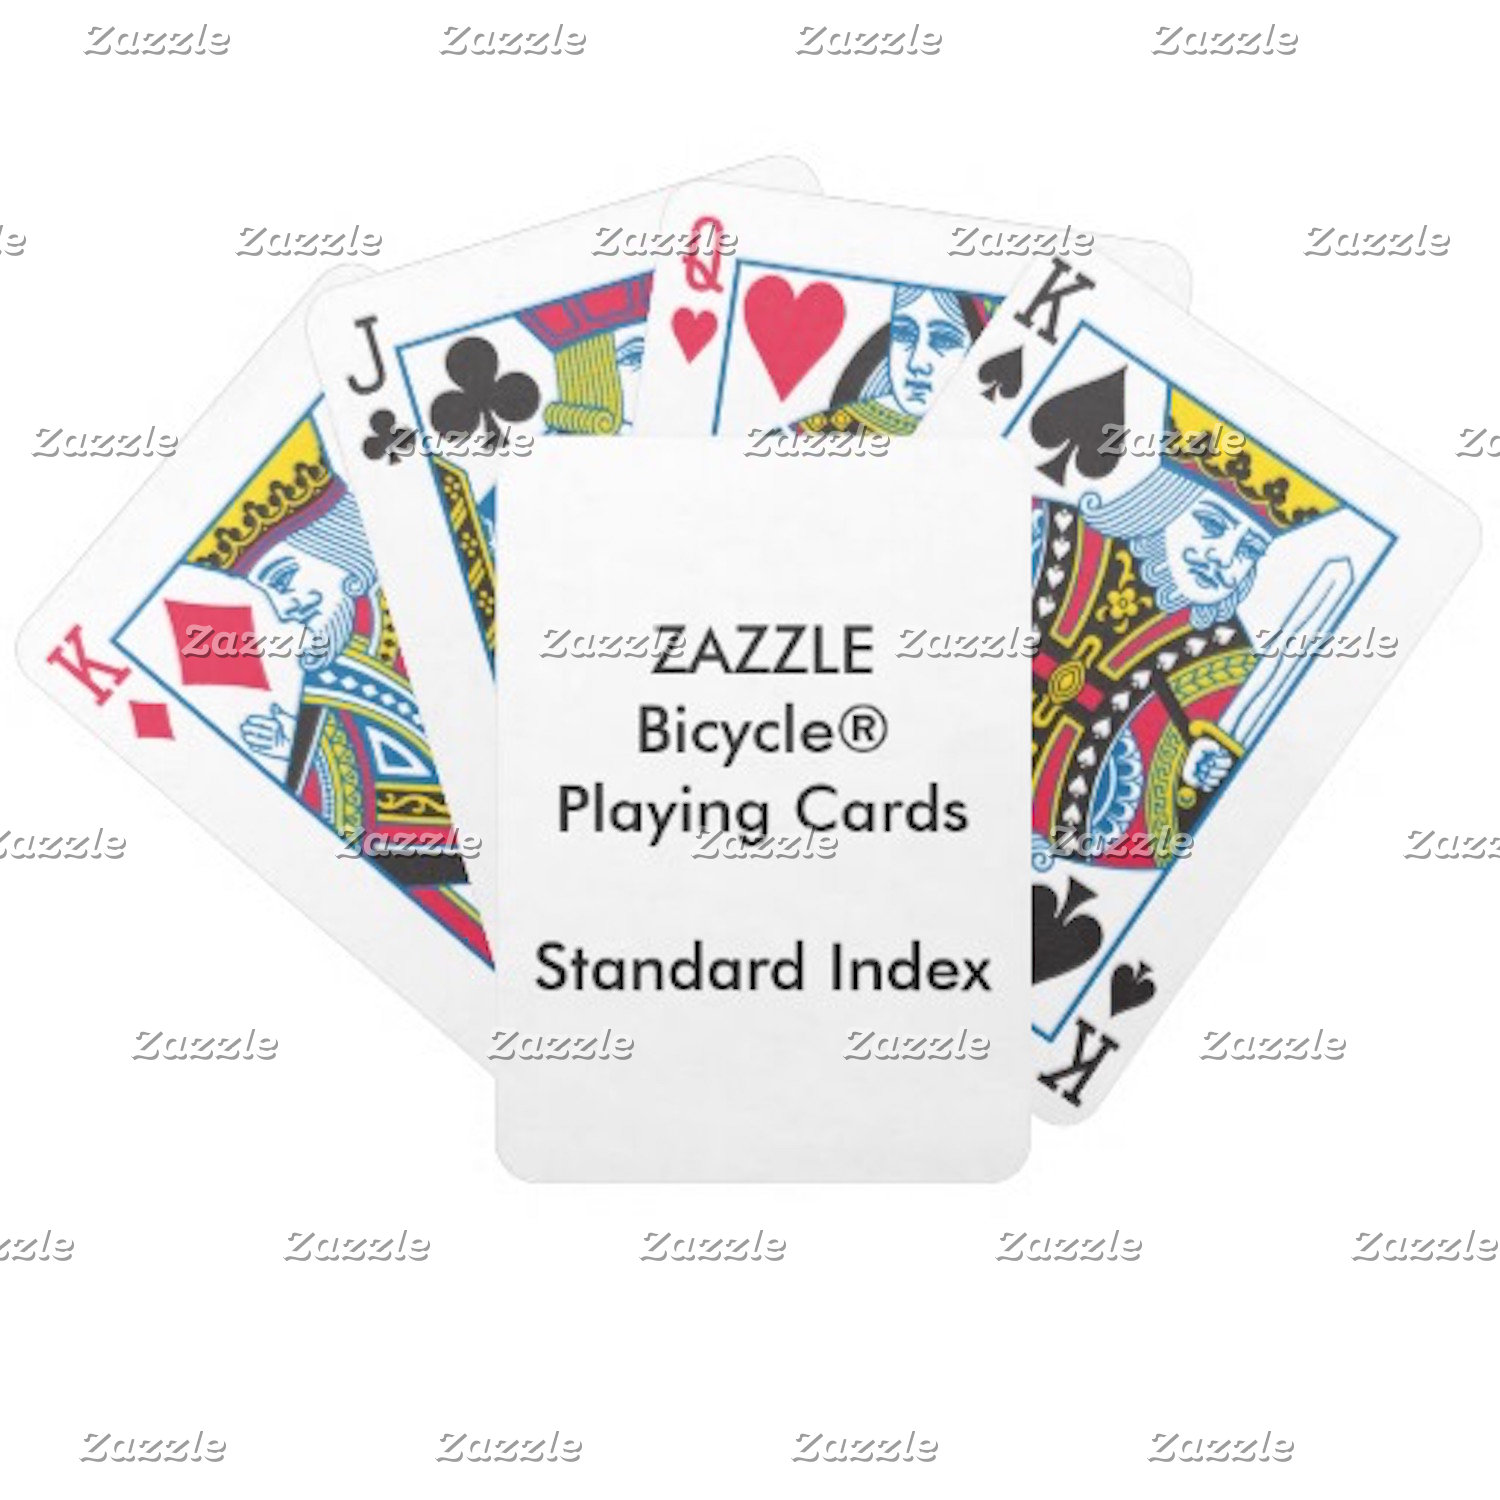 Bicycle® Standard Index